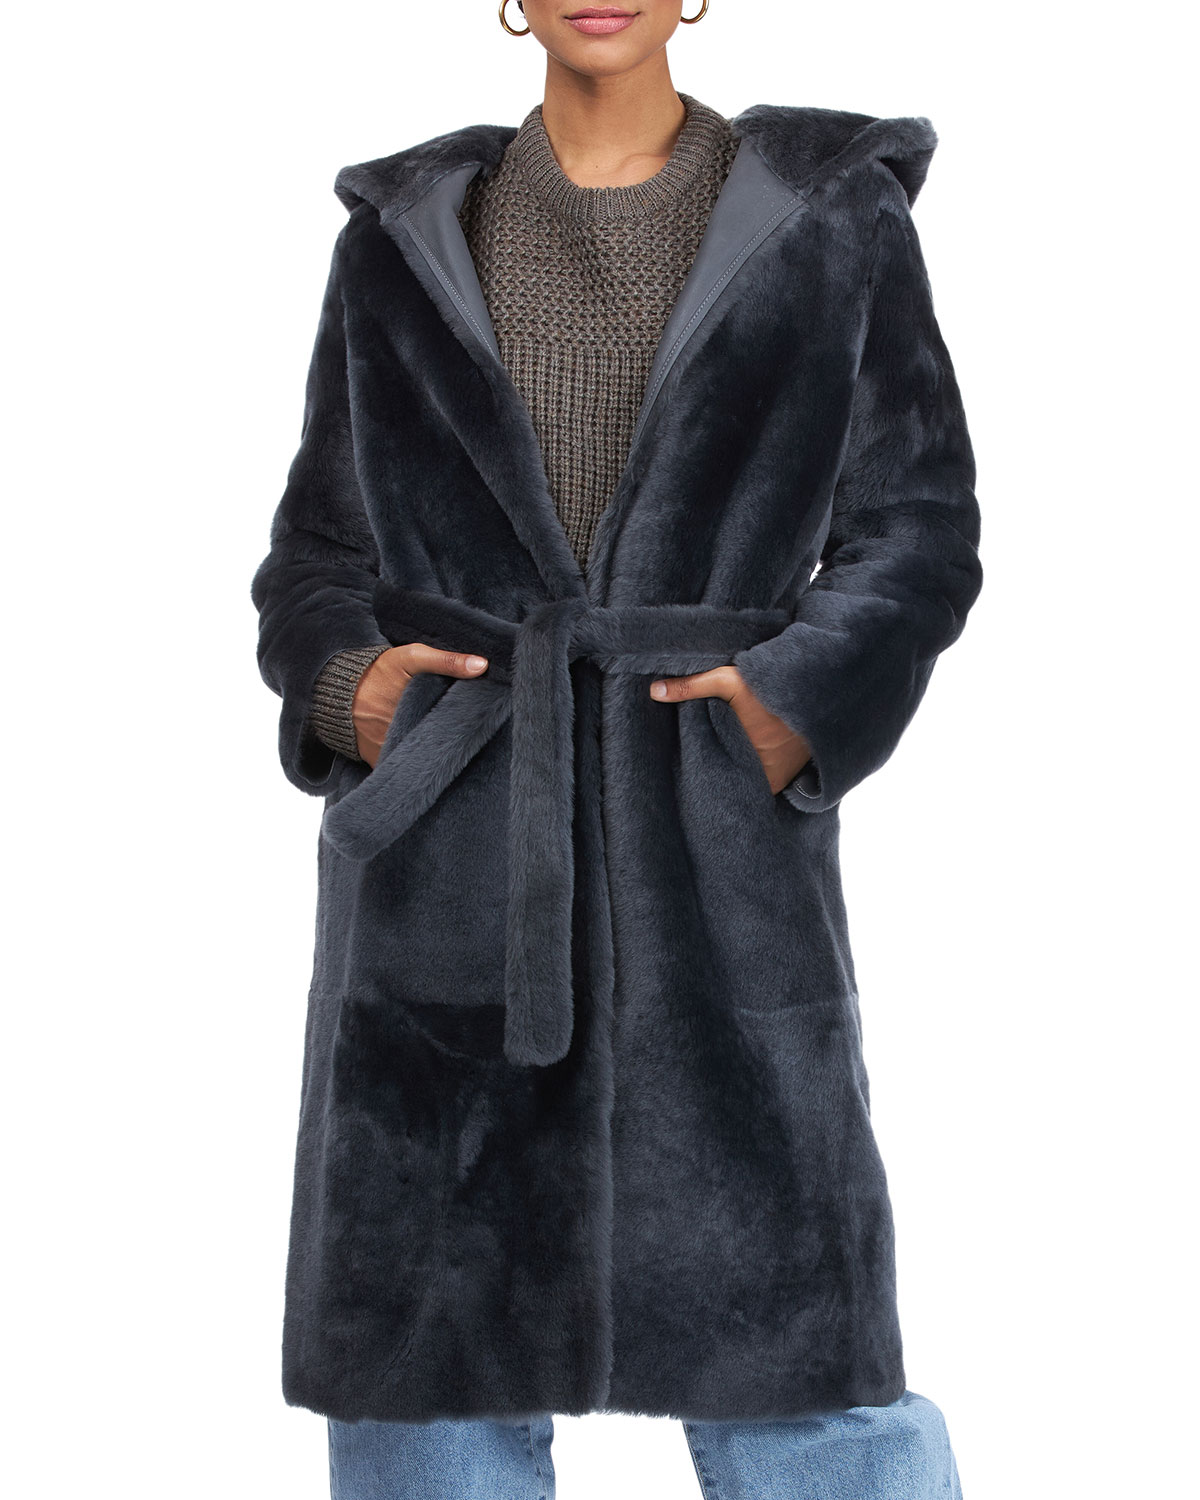 Yves Solomon Short Hooded Shearling Lamb Coat with Belt